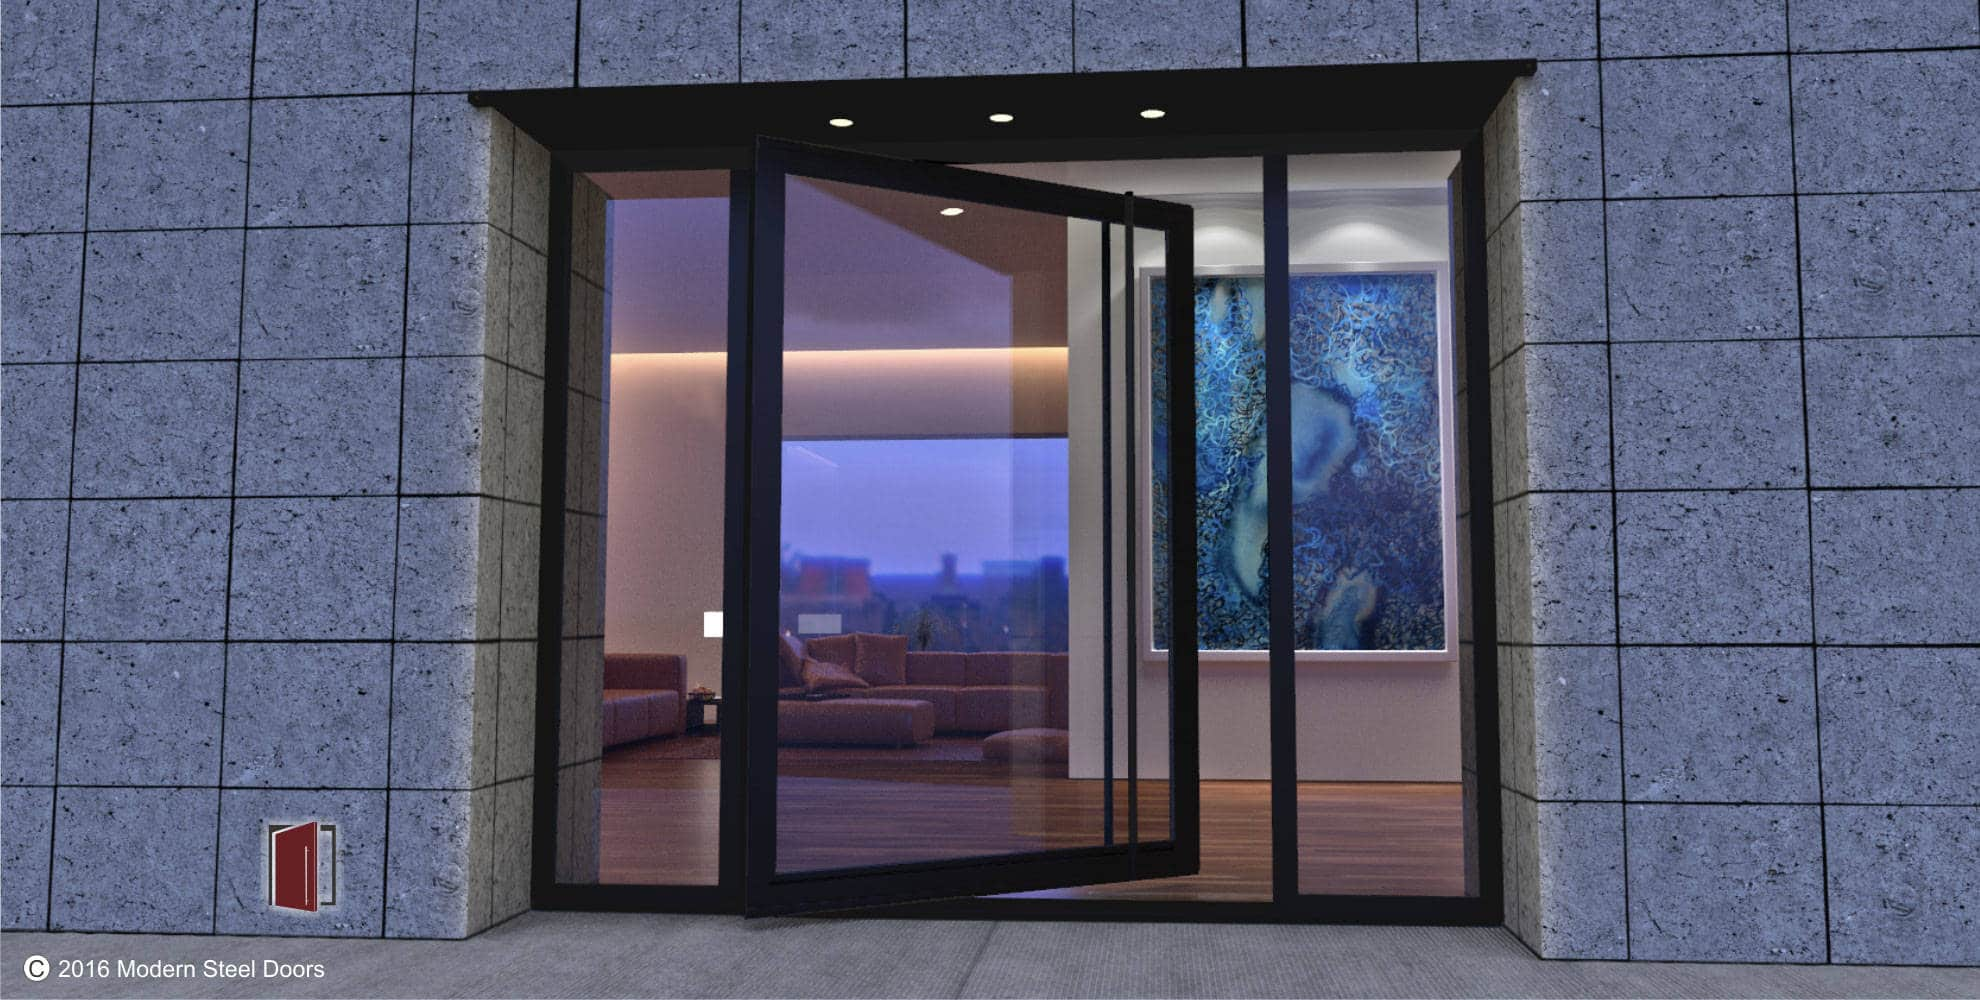 Contemporary glass front doors, custom glass doors, modern glass doors full view glass doors handmade in USA by Modern Steel Doors.